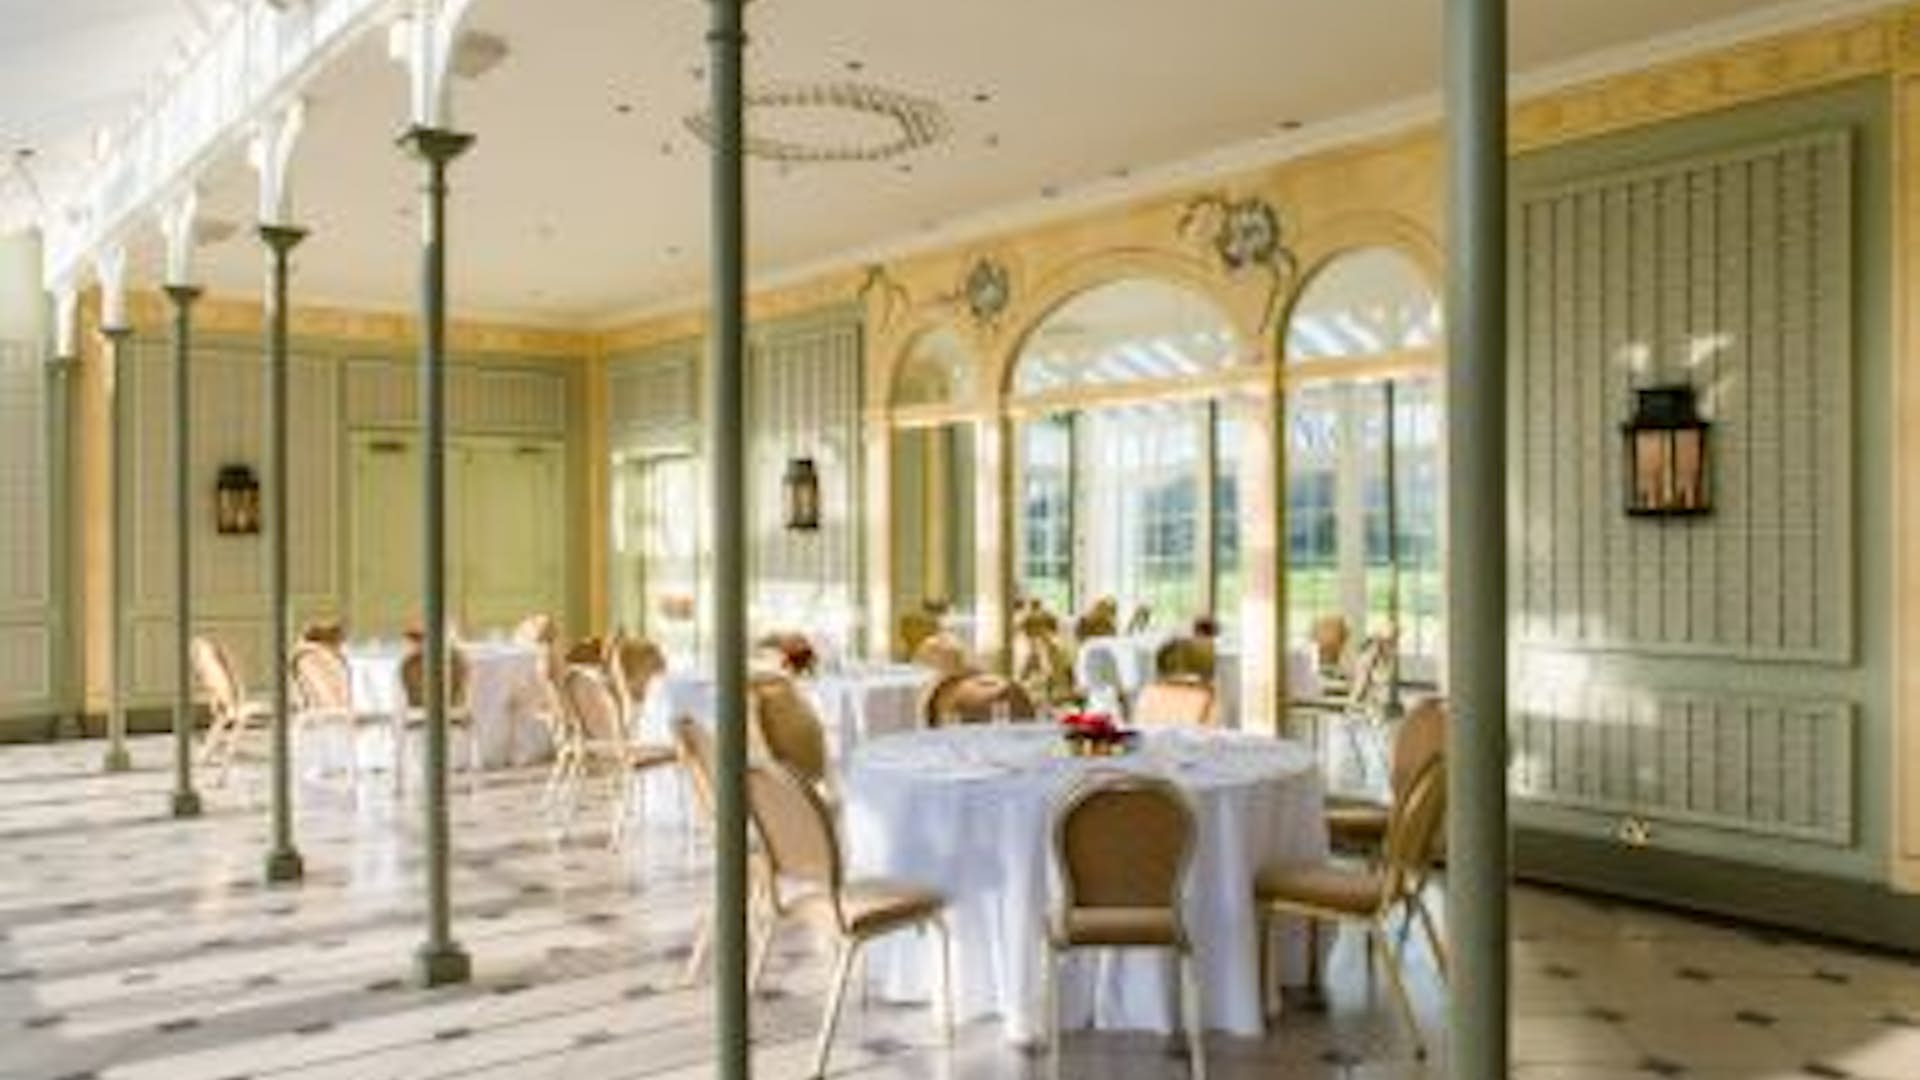 Terrace Room Business Hire The Hurlingham Club